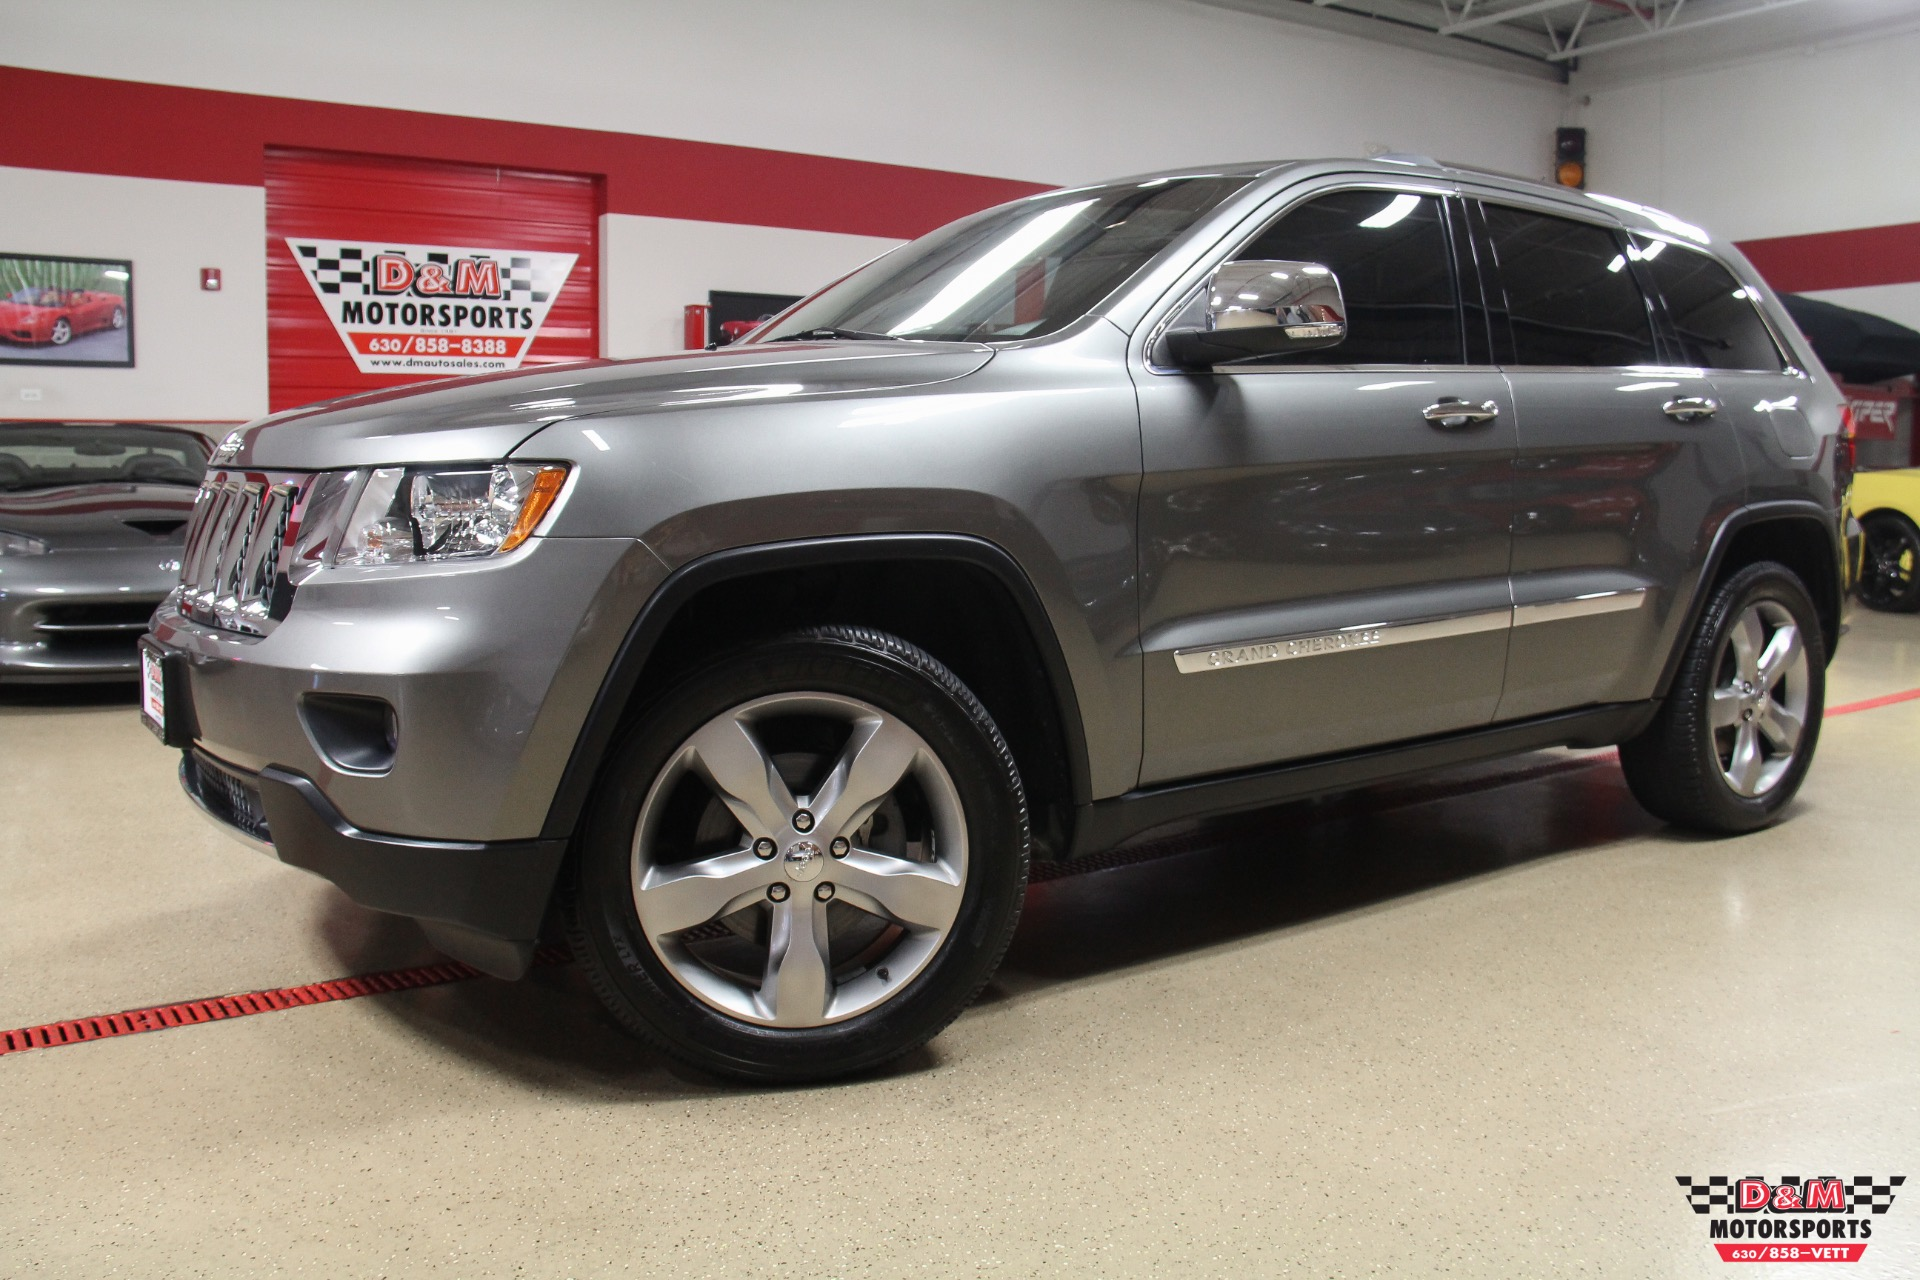 overland very vehicles for clean jeep title grand cherokee bejjkf information sale